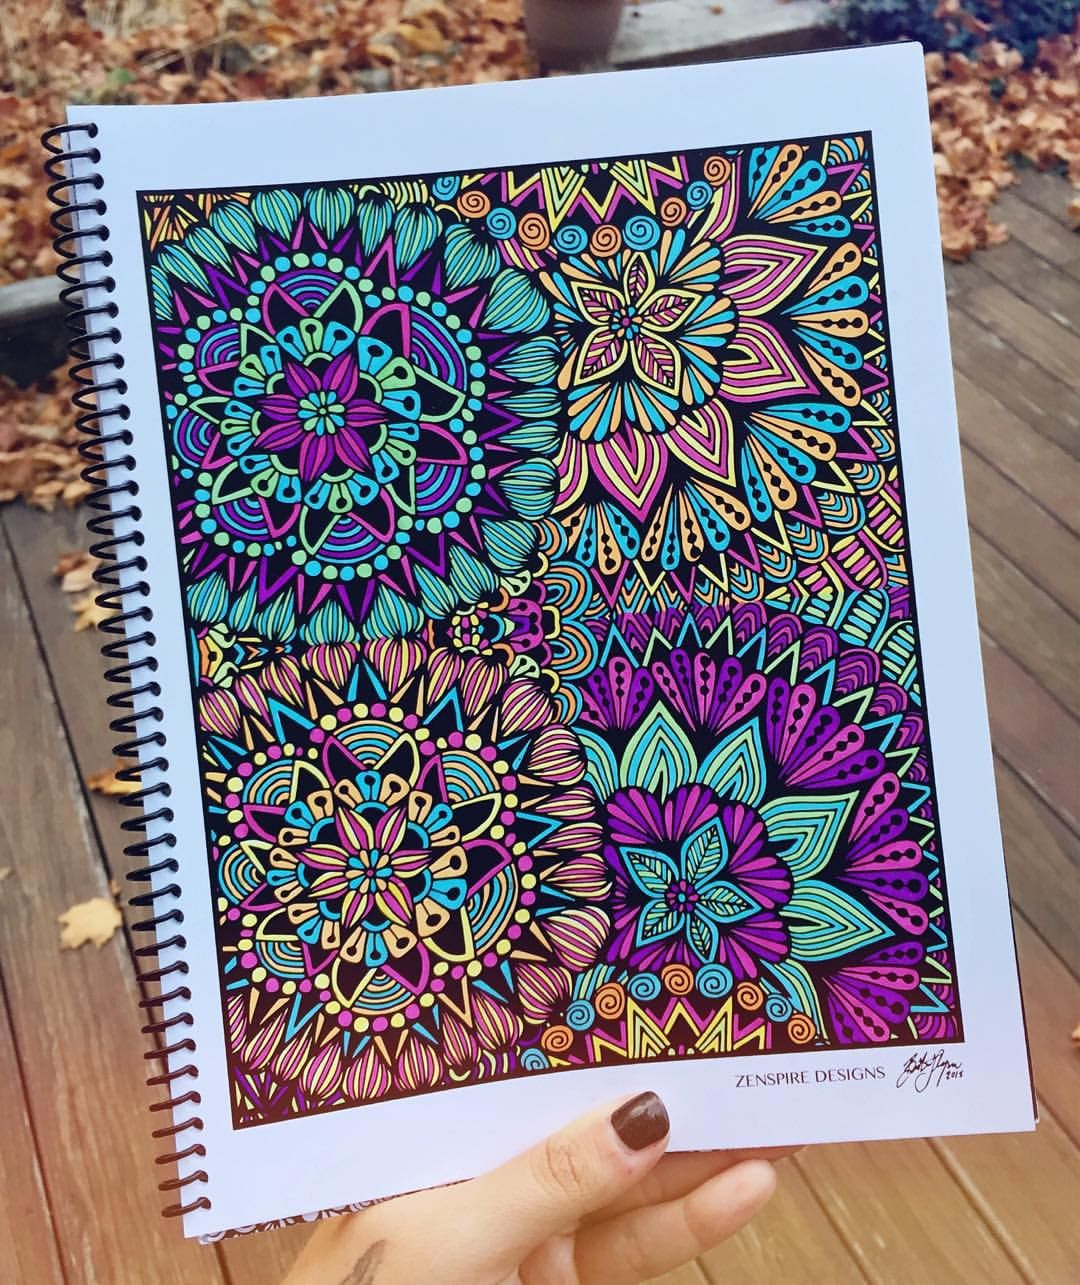 Finally Finished Another Full Page In My Coloring Book Still 13 To Go Order Yours Today And Get It This Week Link Bio Zentangle Zenspire